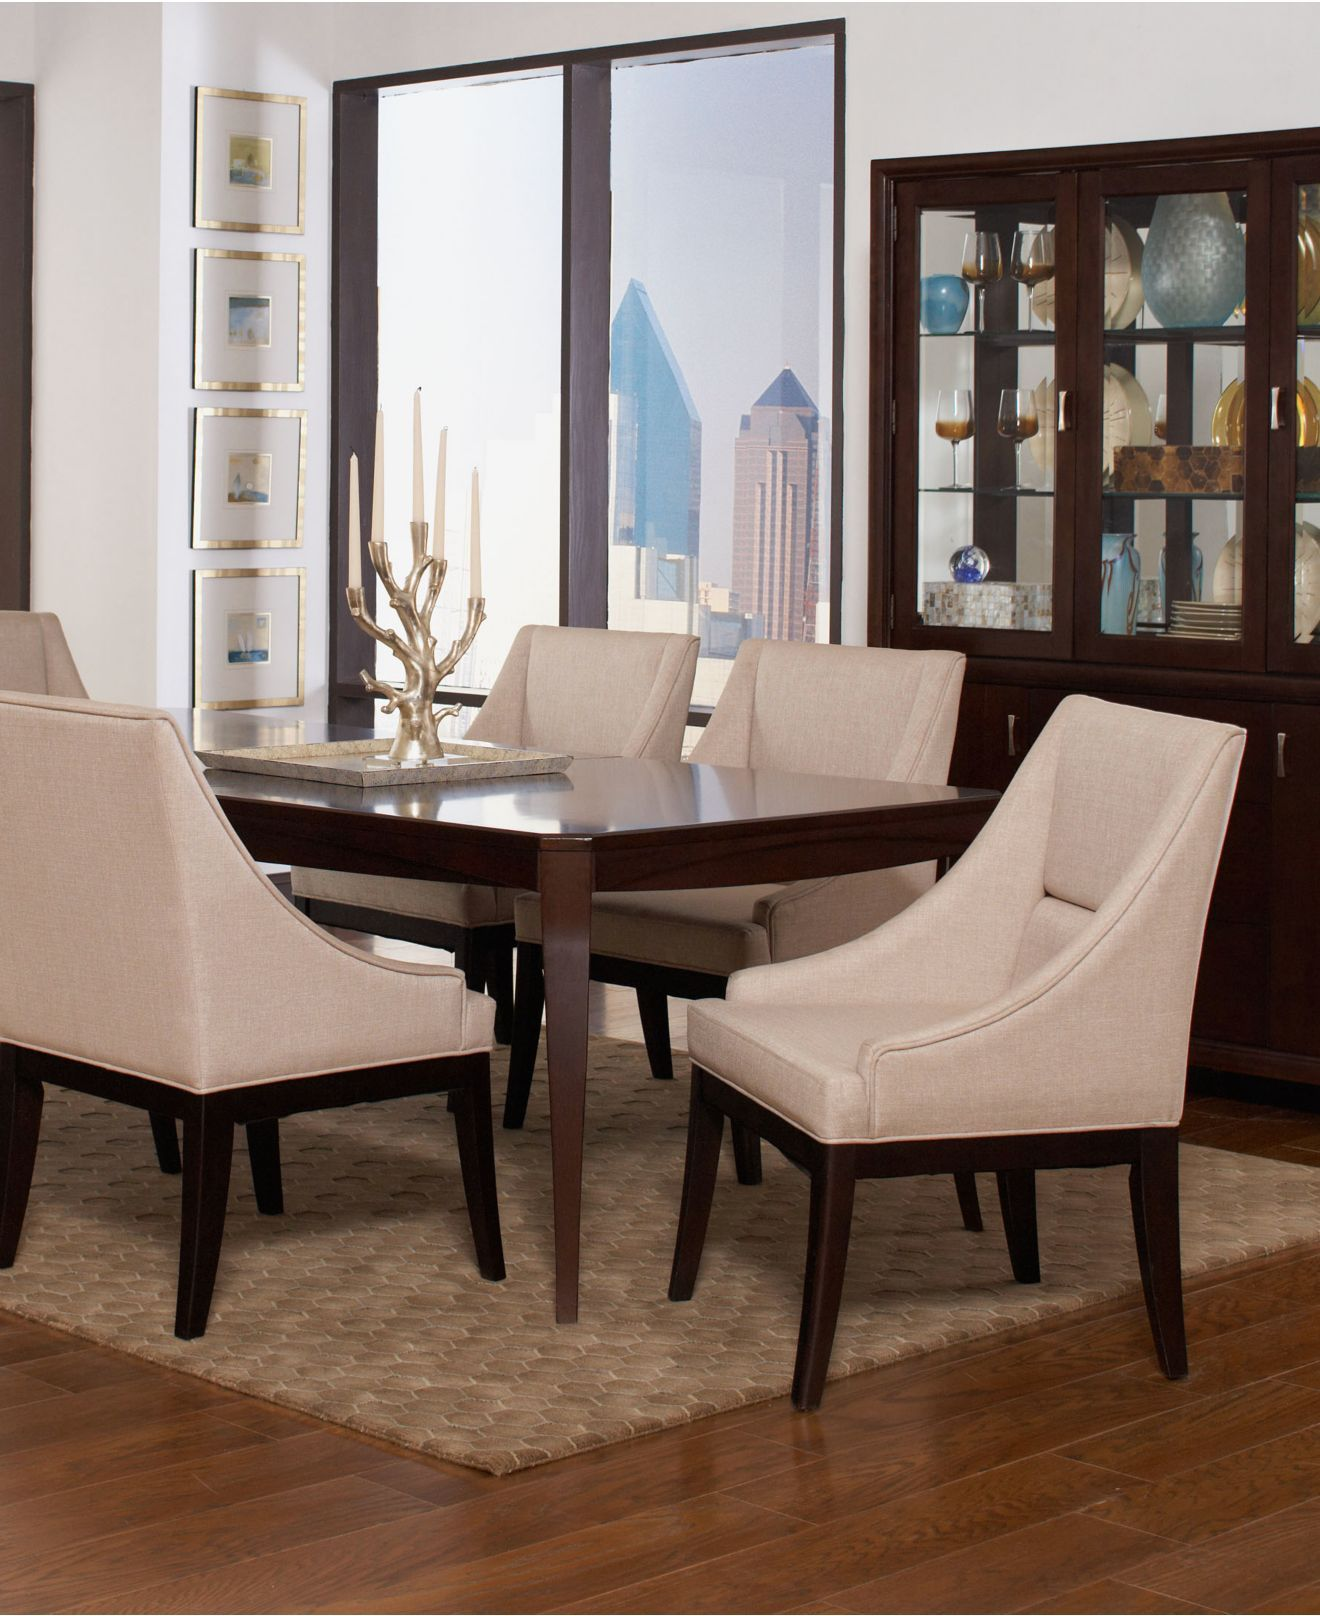 $250 Chairs Terrace Dining Room Furniture Collection  Dining Room Magnificent Dining Room Chairs Online Inspiration